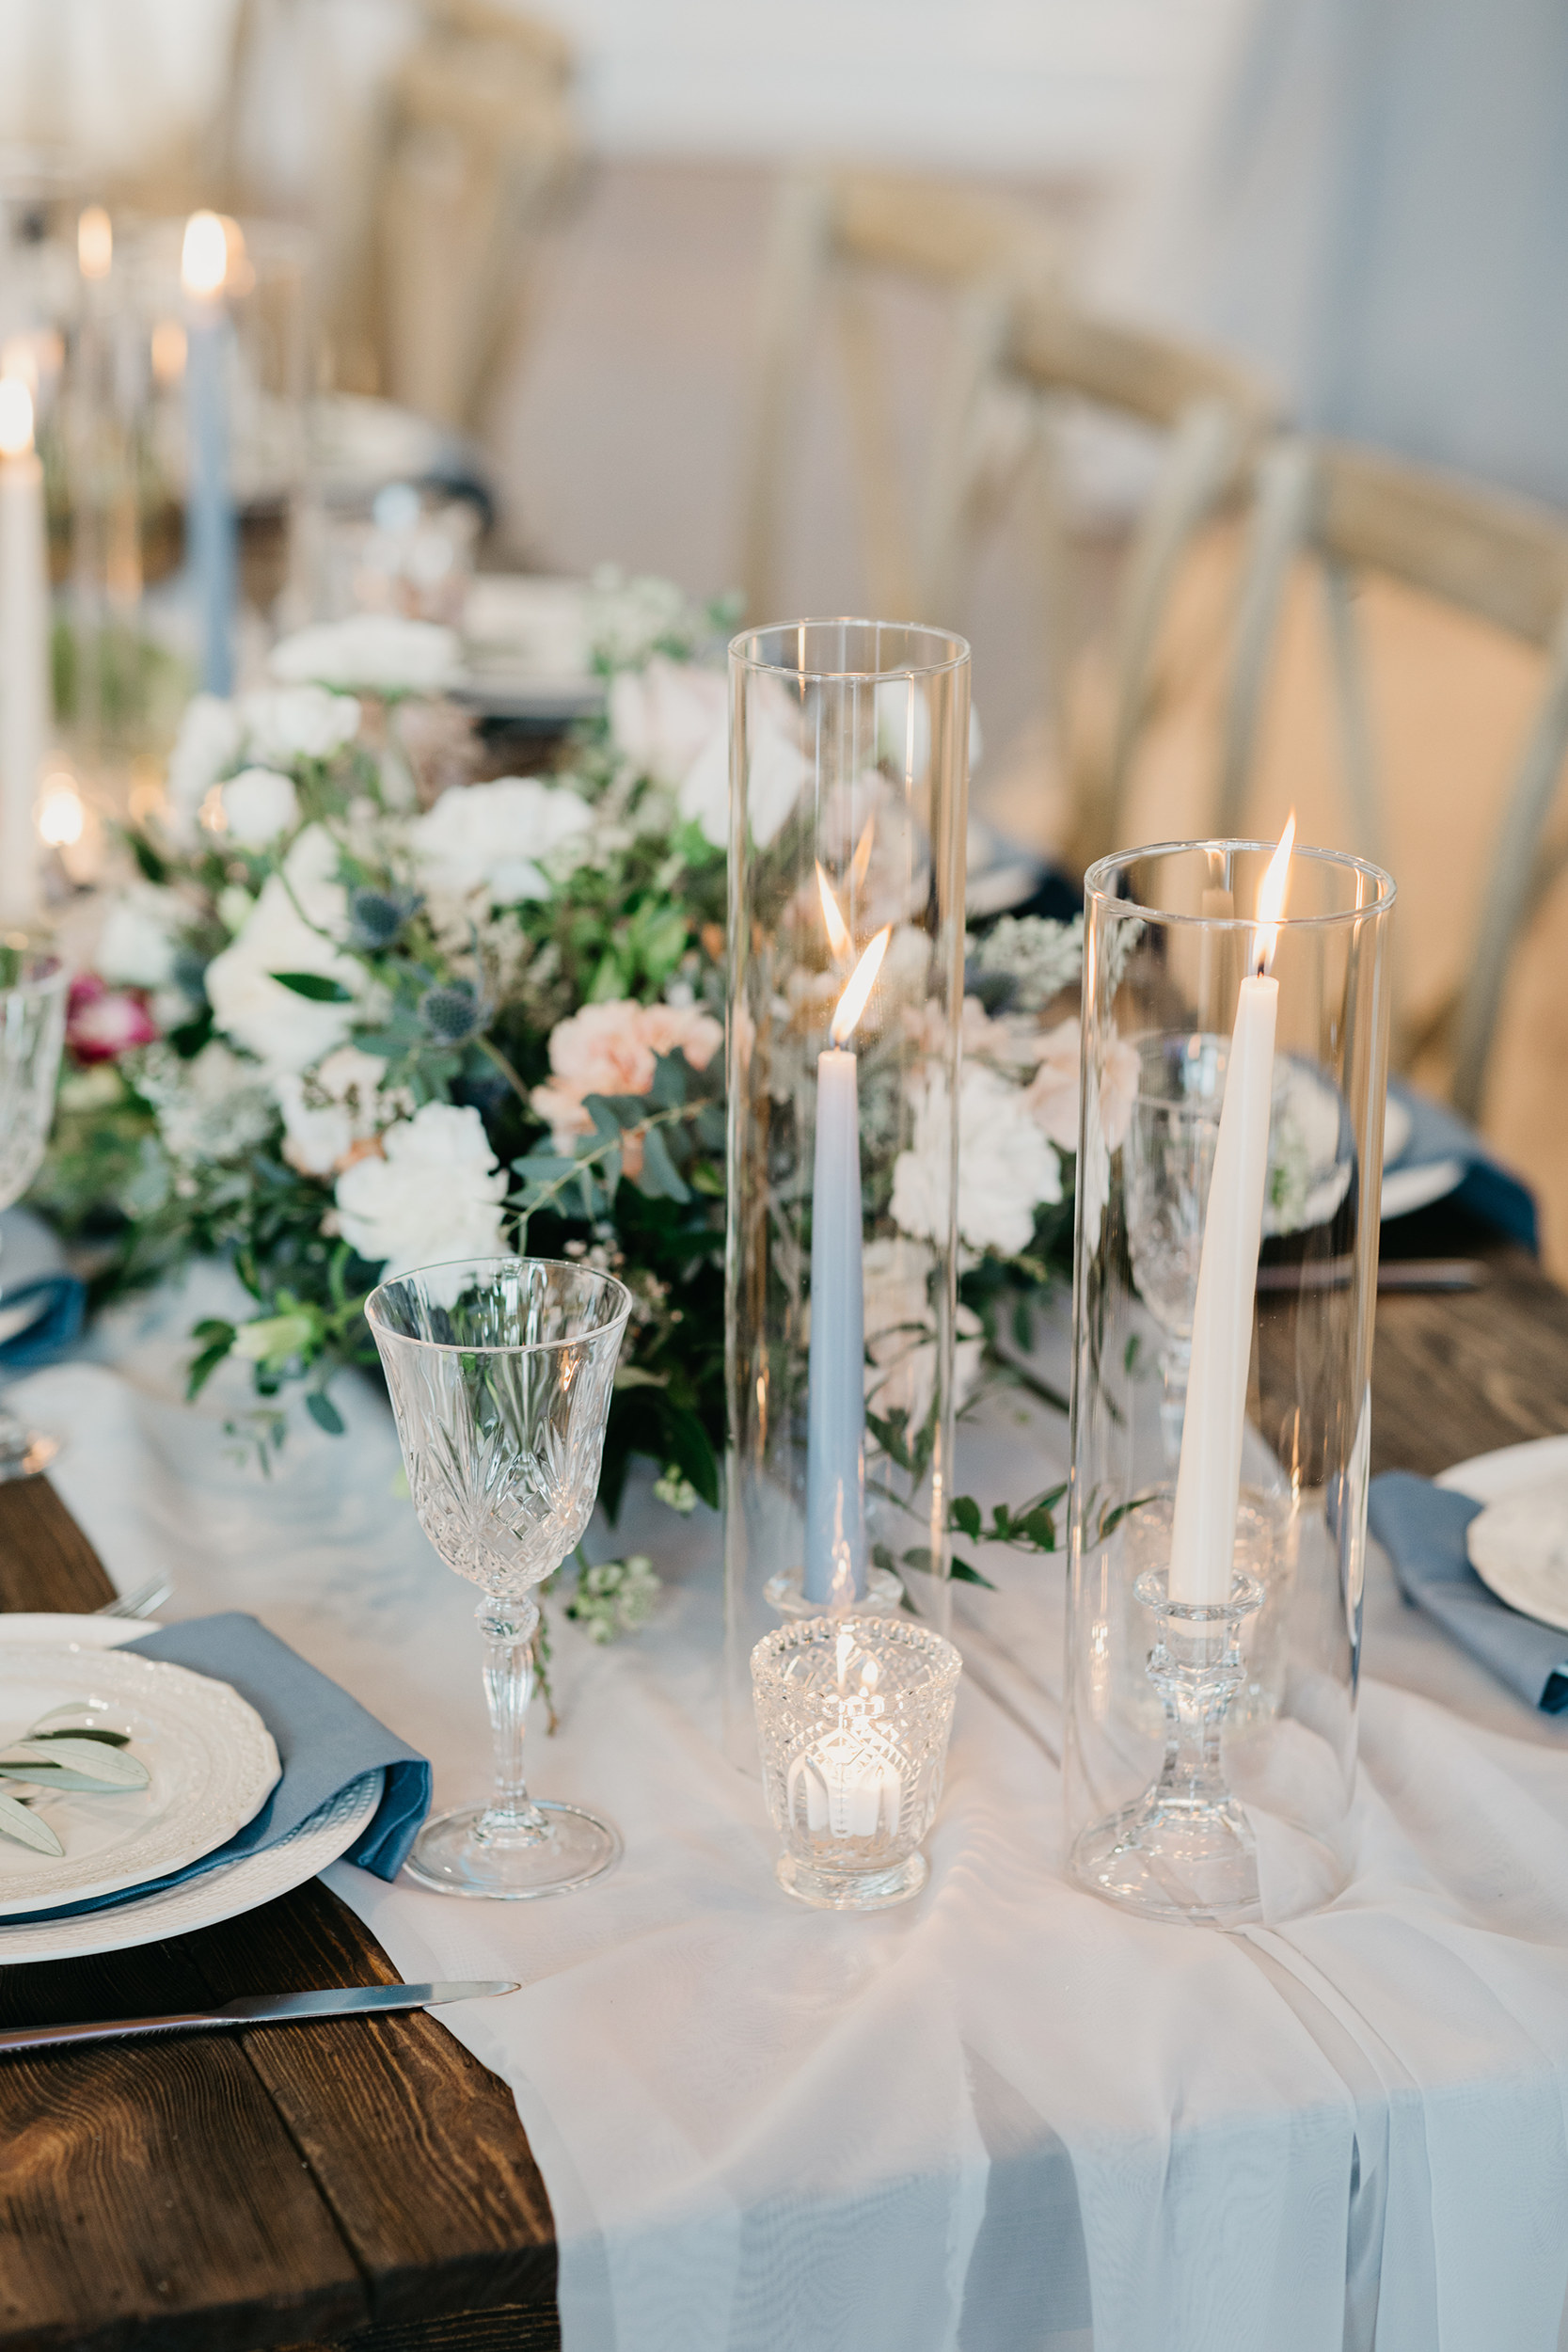 Violette-fleurs-event-design-roseville-Nelli-noel-photography-the-falls-event-center-Curated-Beautiful-Decor-table-centerpieces-reception.jpg